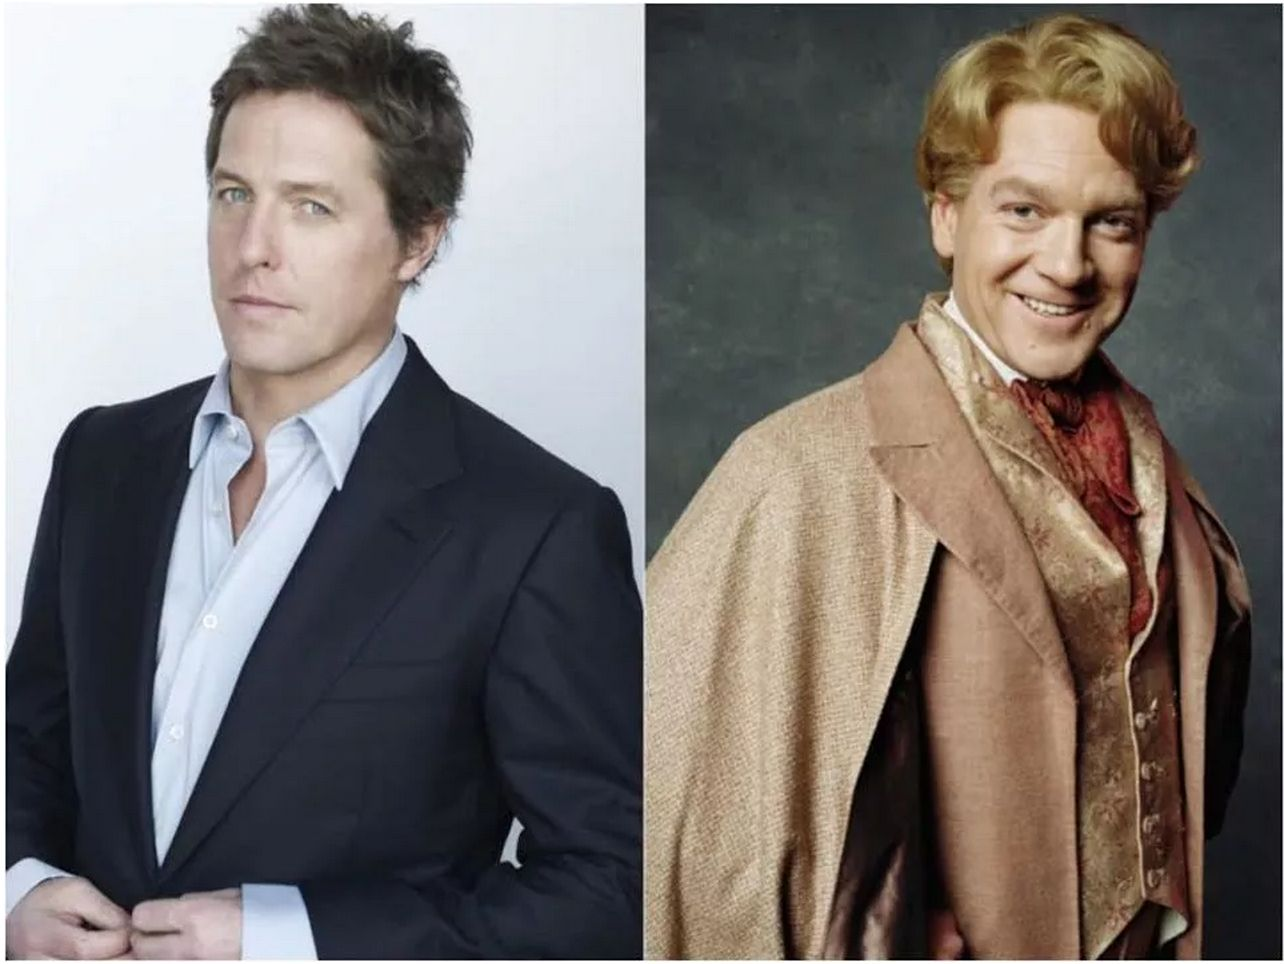 Hugh Grant as Zlatopust Lokons